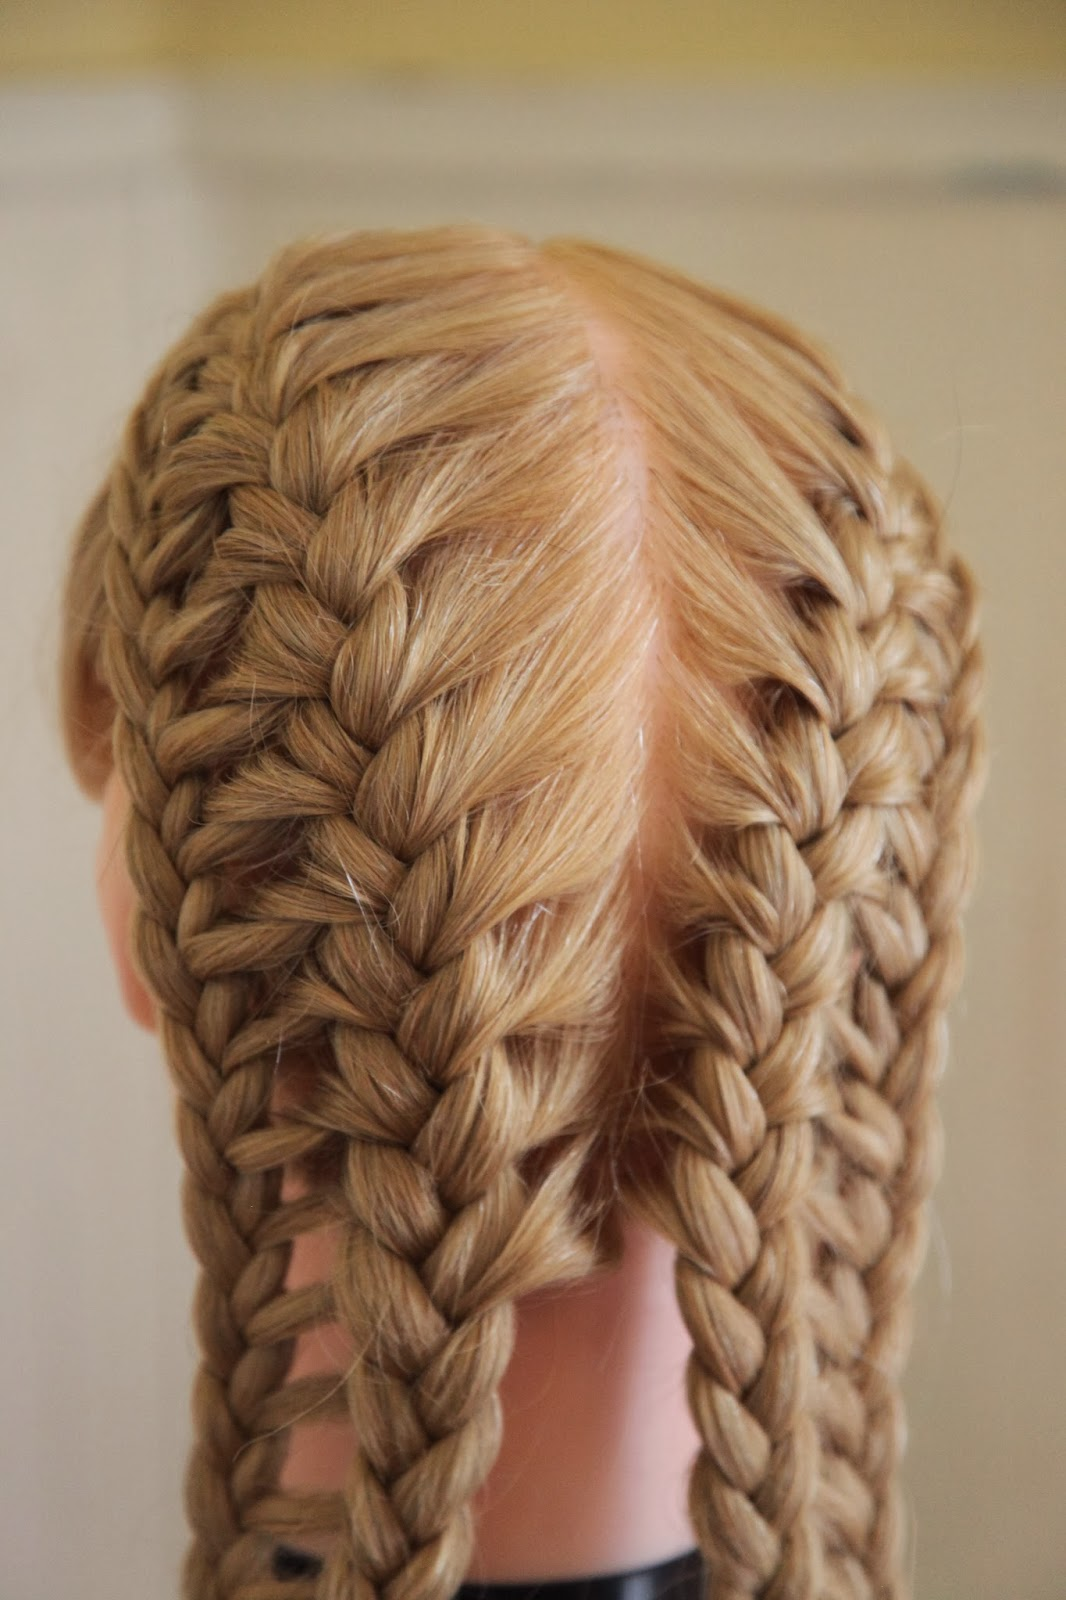 plait styles for hair 38 intricate plait hairstyles hairstylo 6099